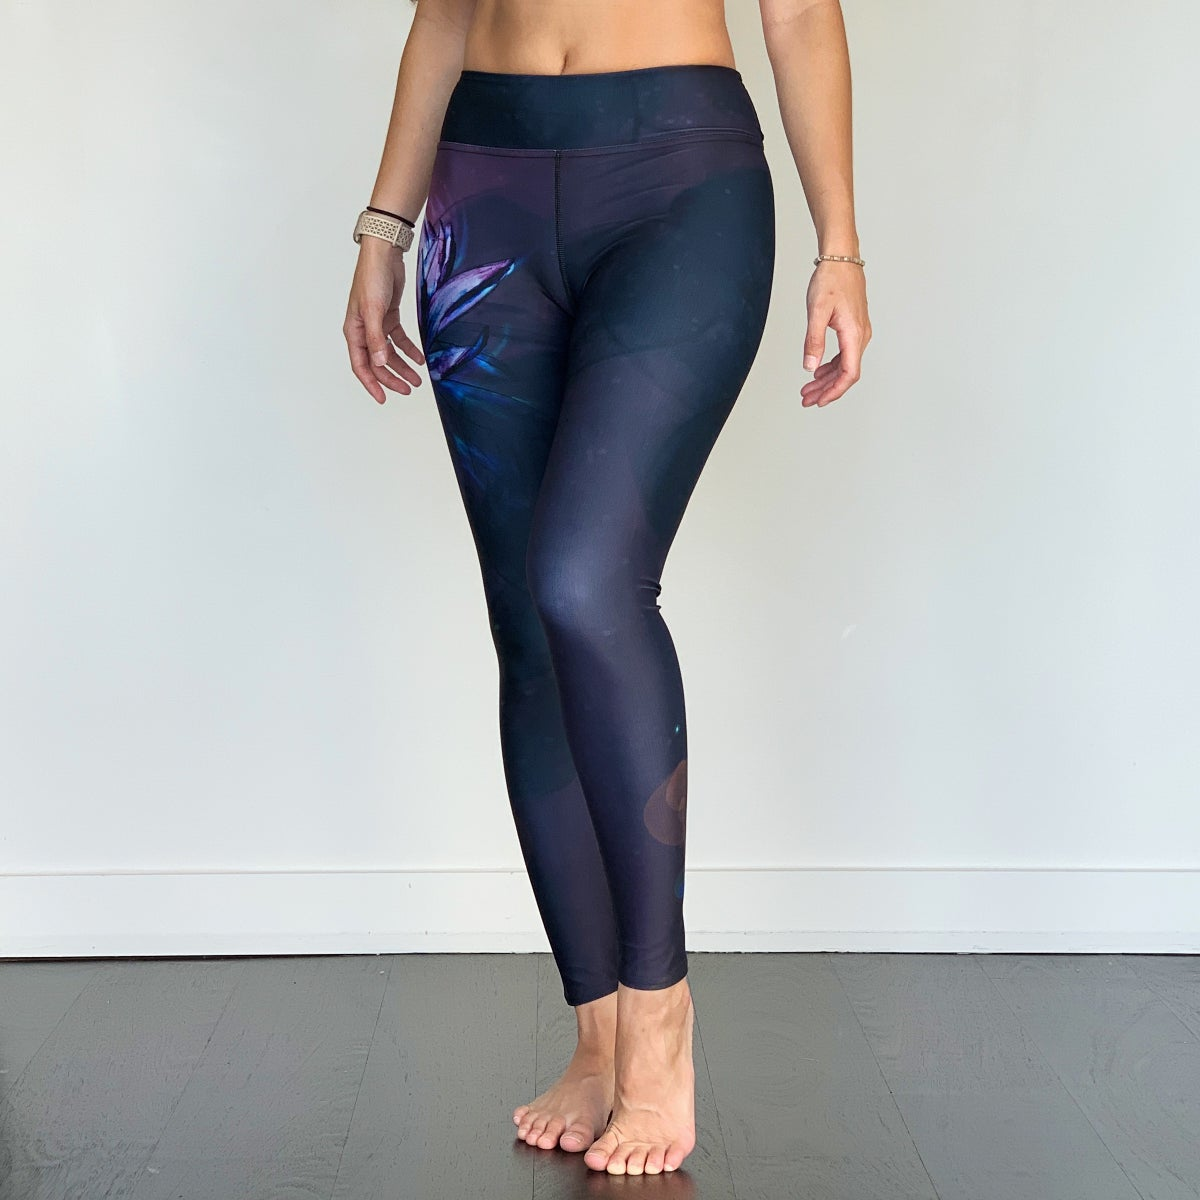 Image of Lotus Yoga Pants